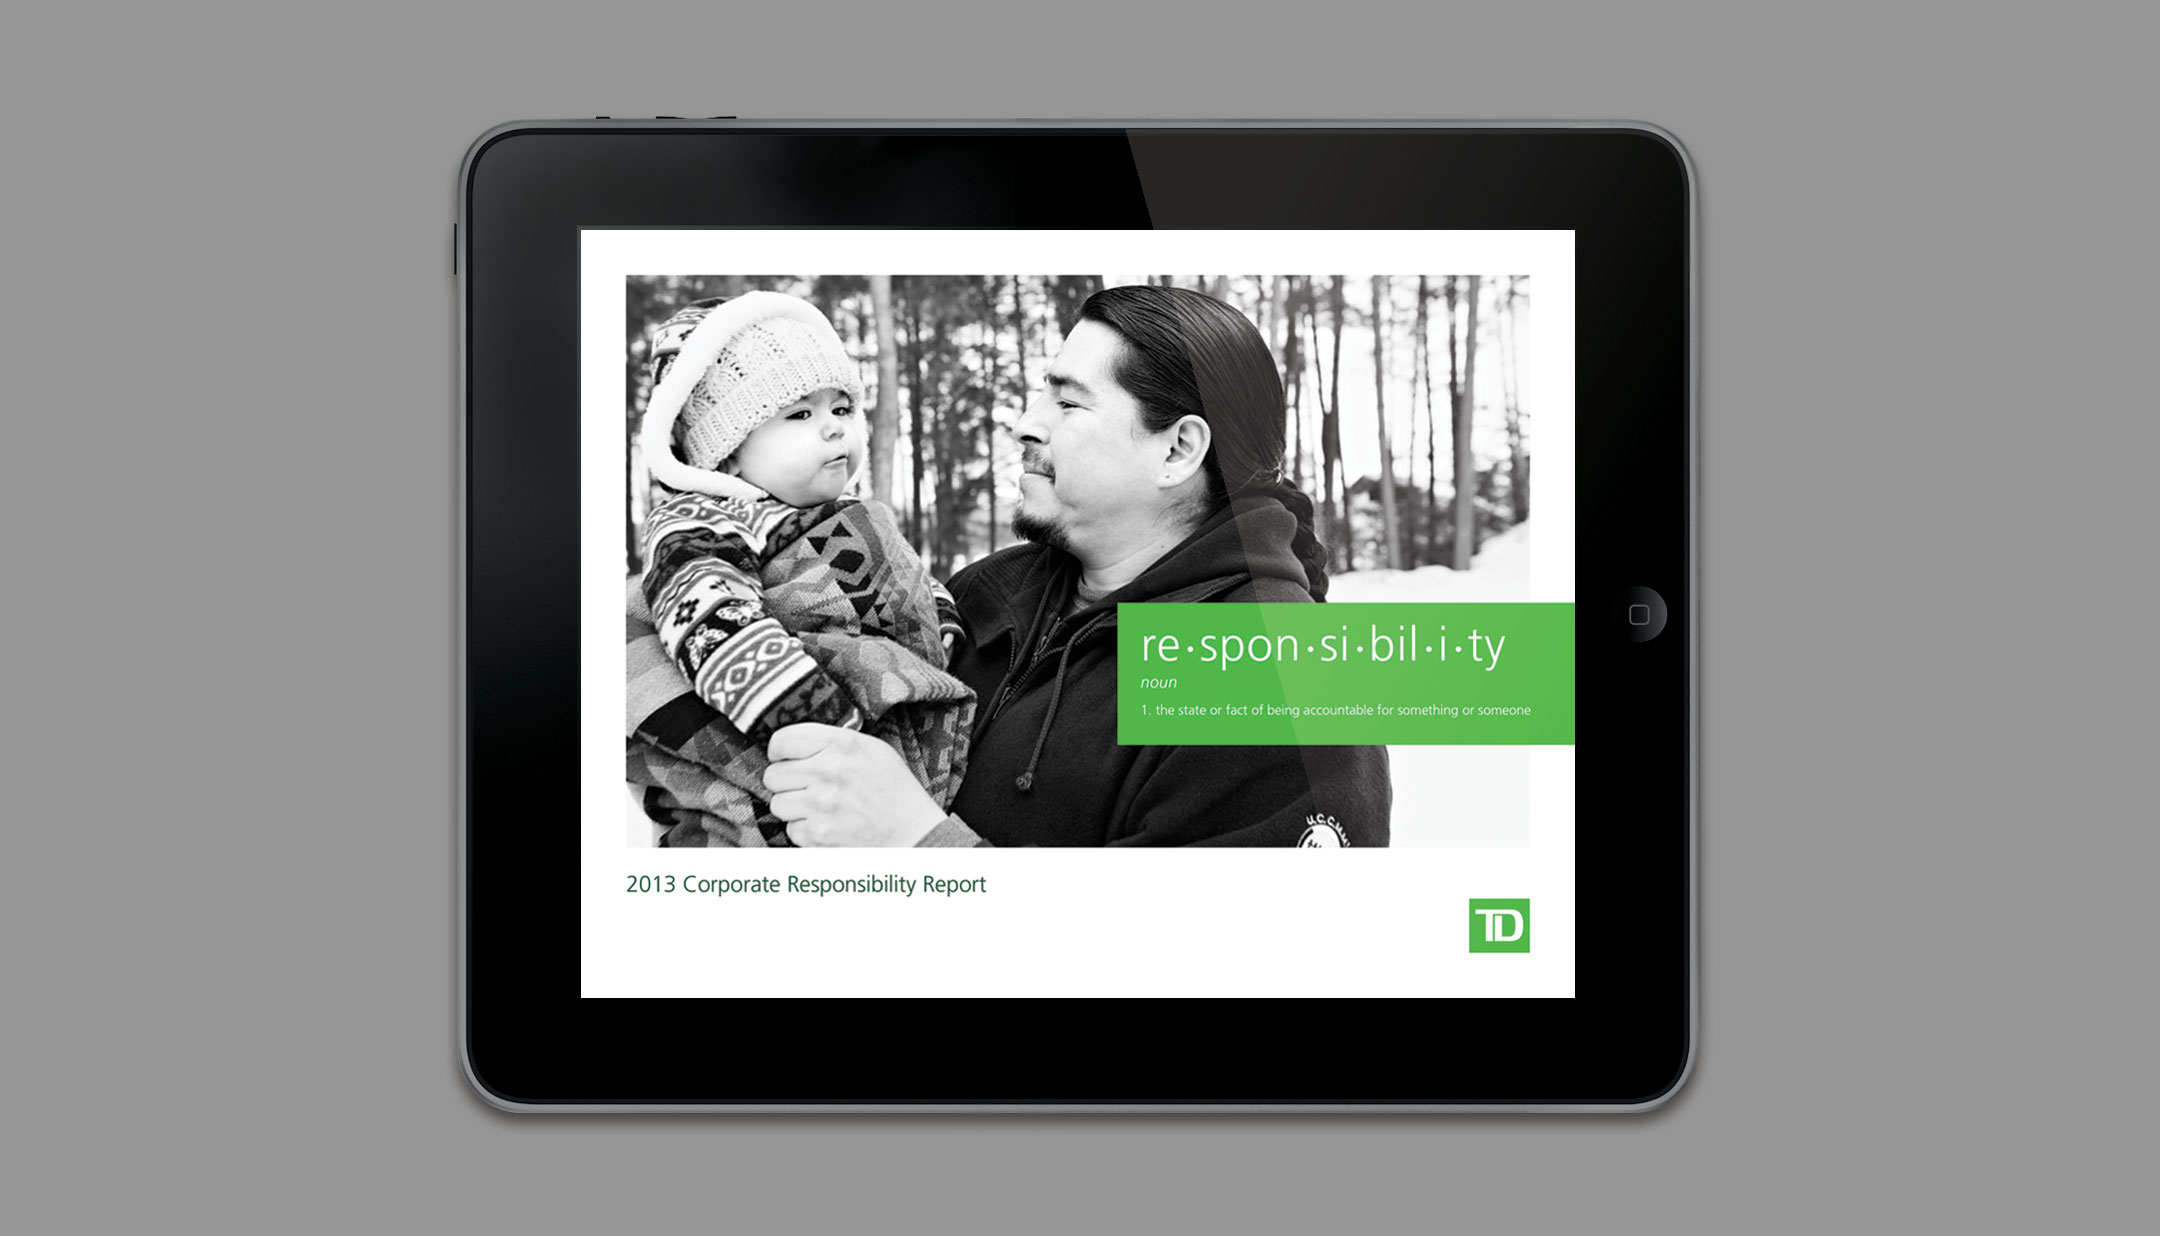 TD Corporate Responsibility slide 1